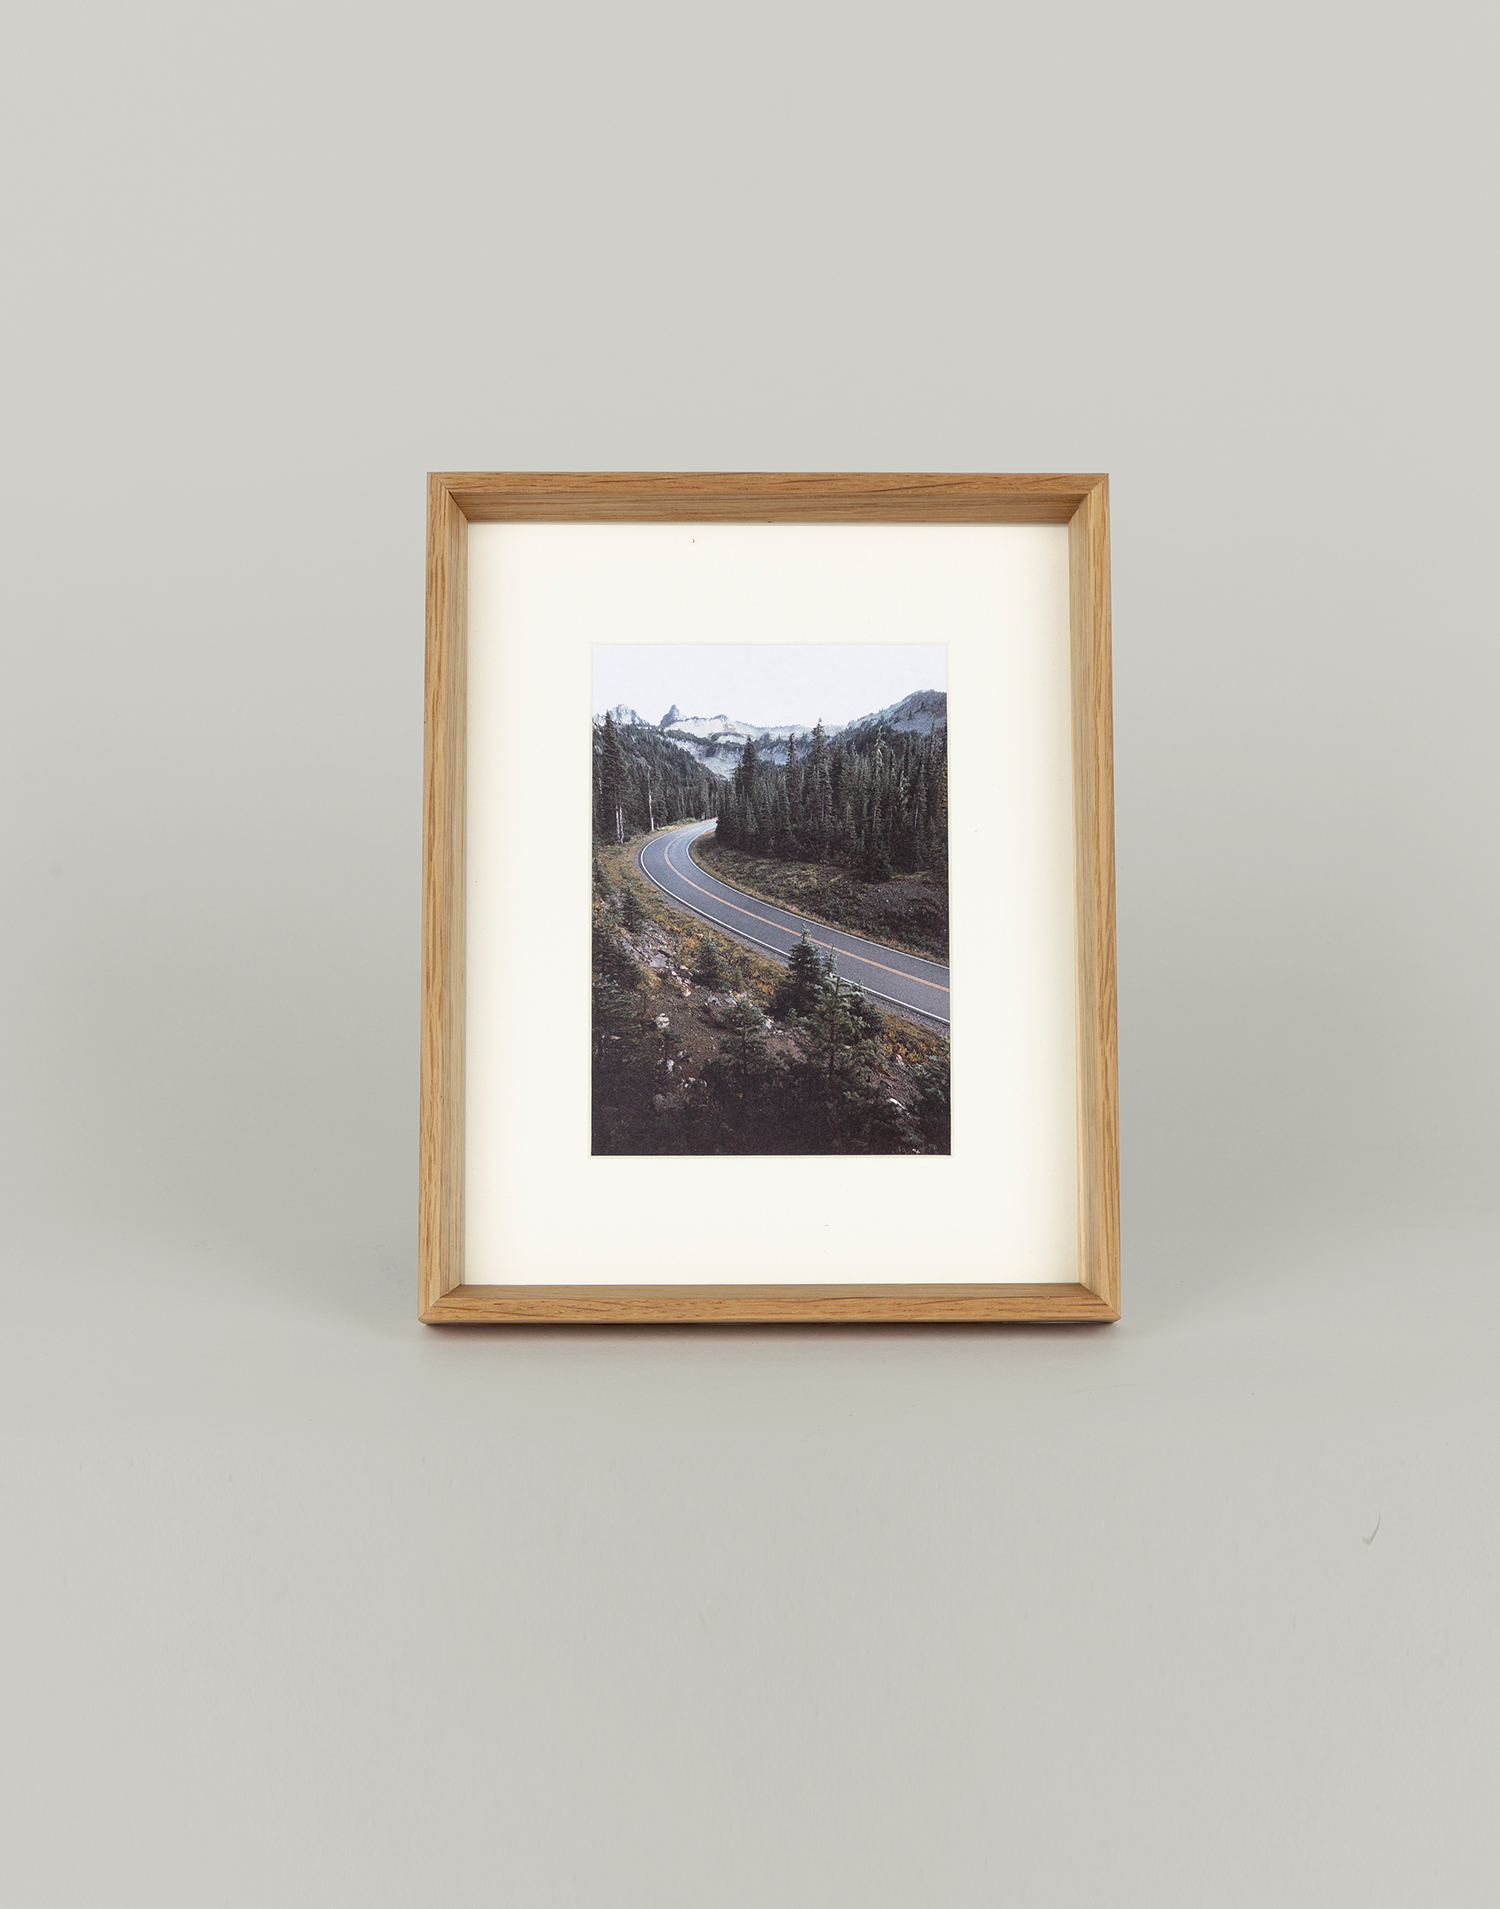 Oak photo frame 13 x 18 cm